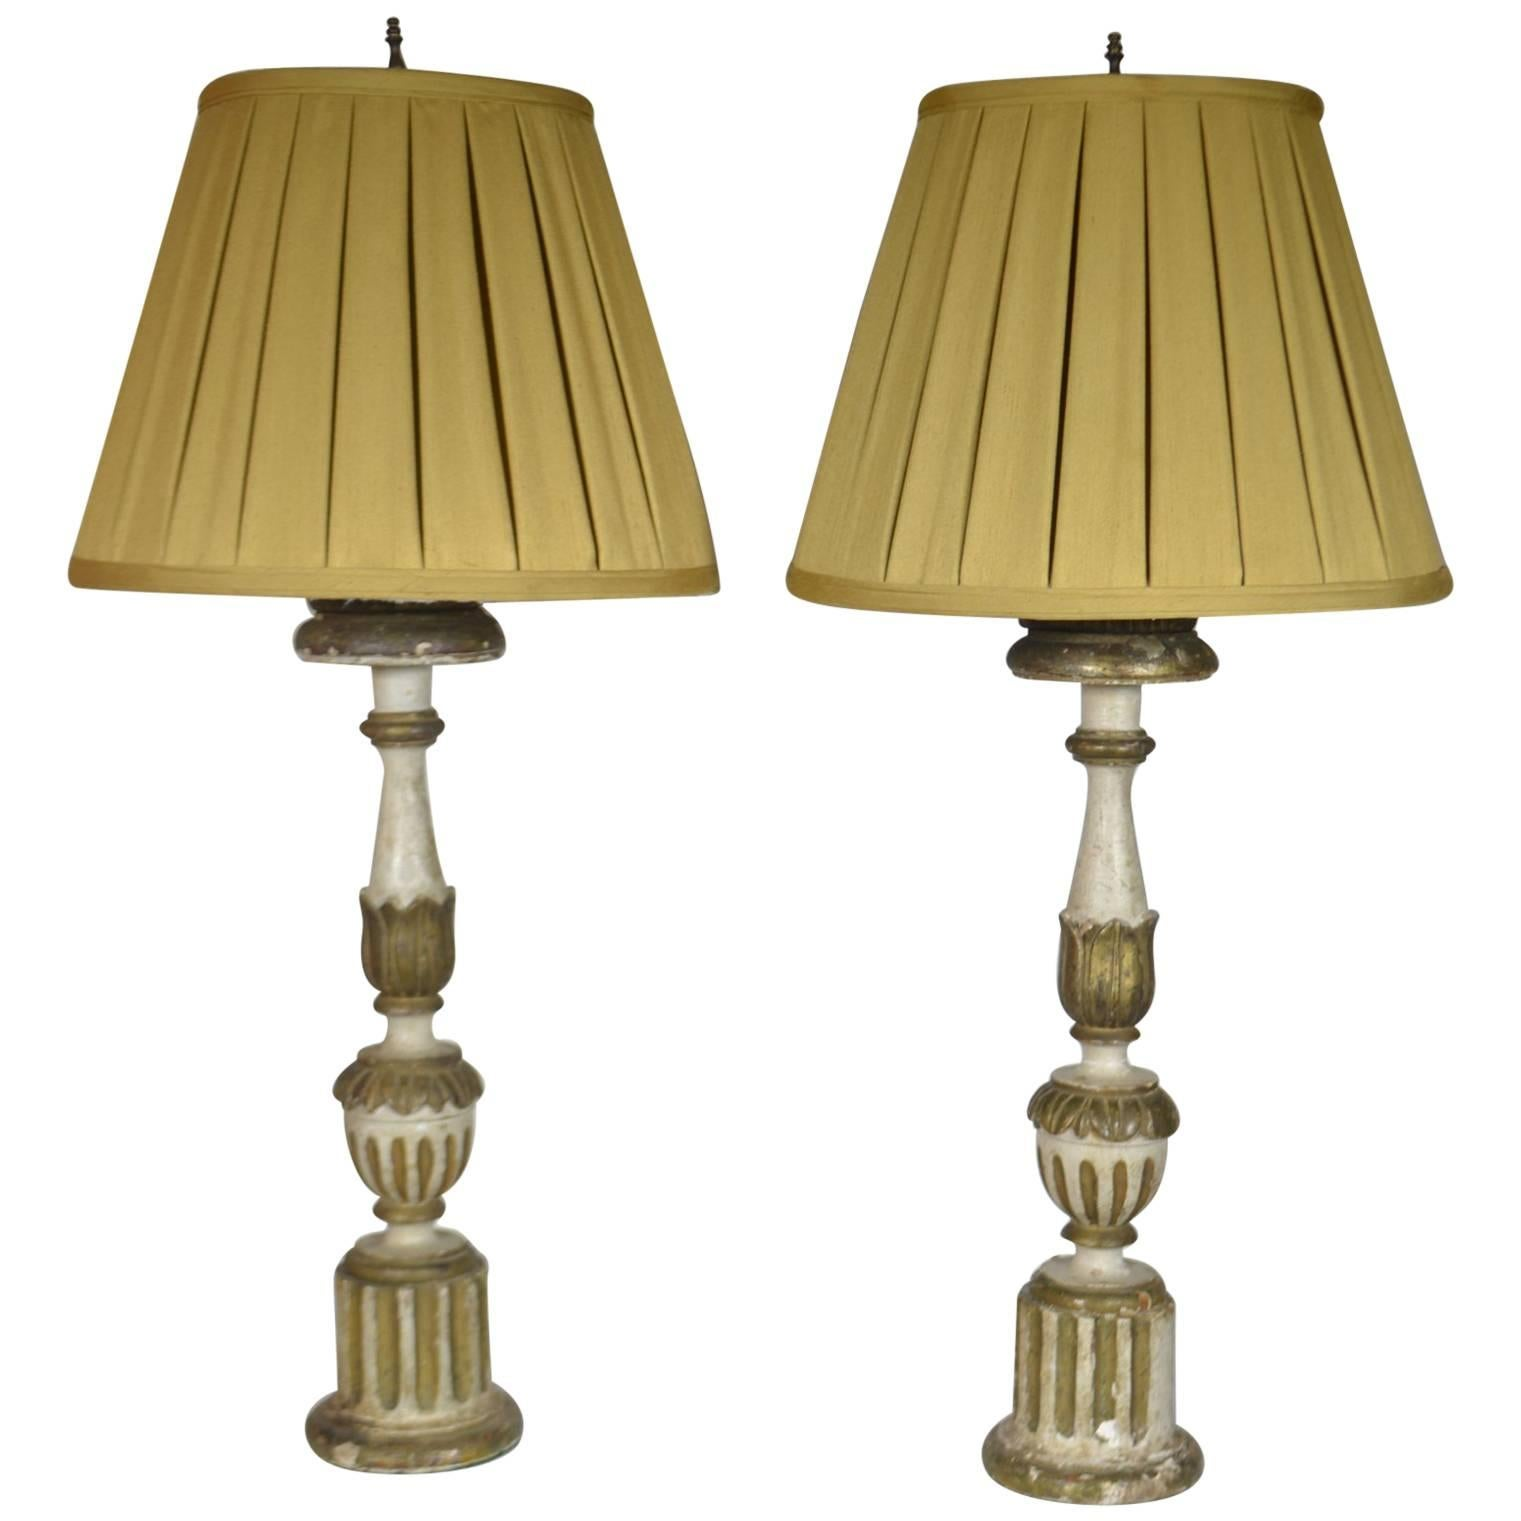 18th Century Pair of Italian Fluted Candlestick Lamps